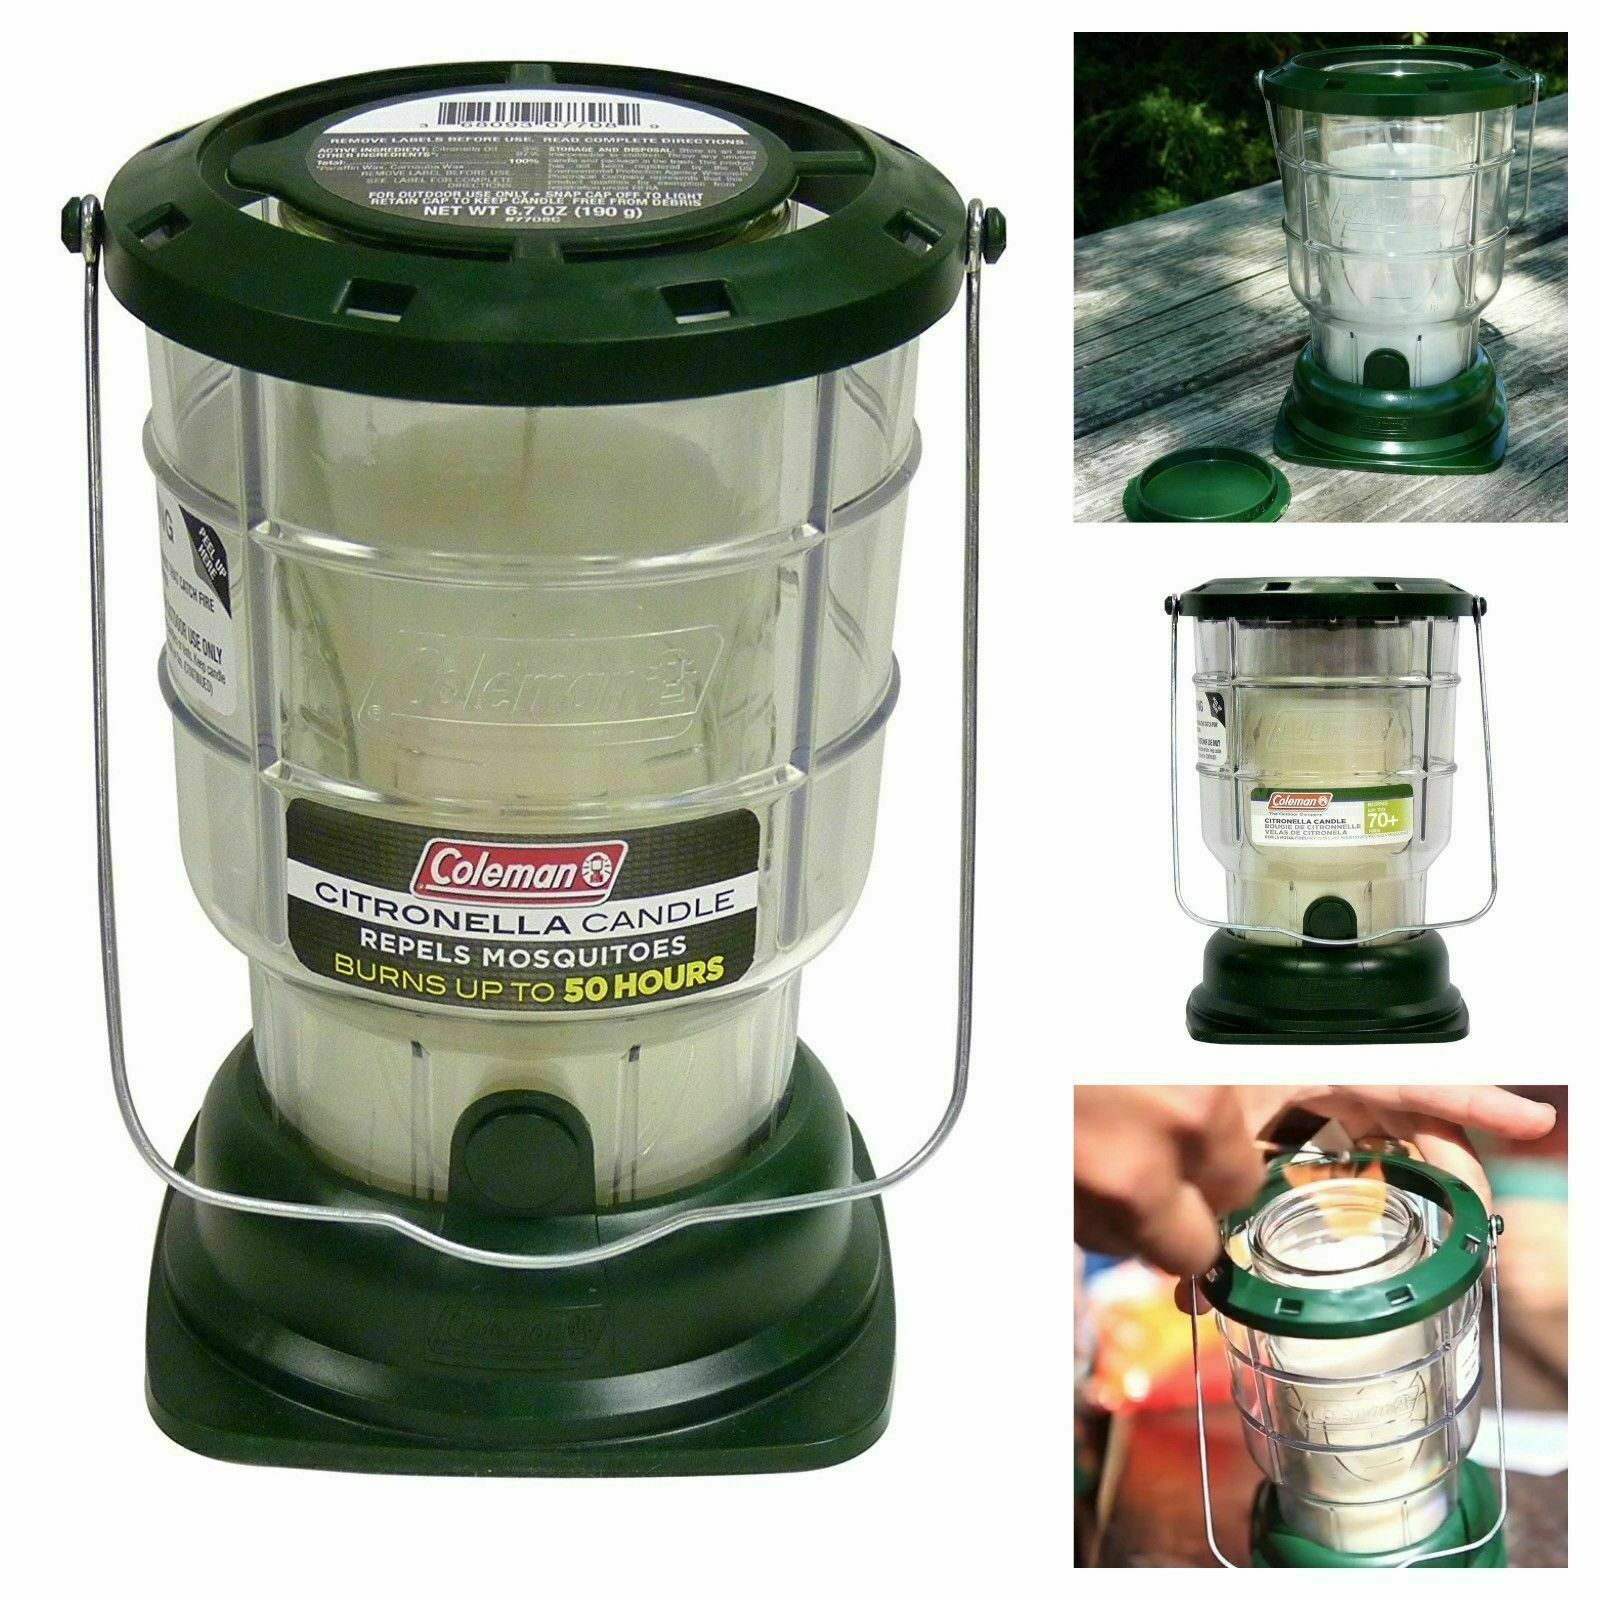 Citronella Candle Outdoor Lantern Camping 70 Hours Mosquitoes Repel